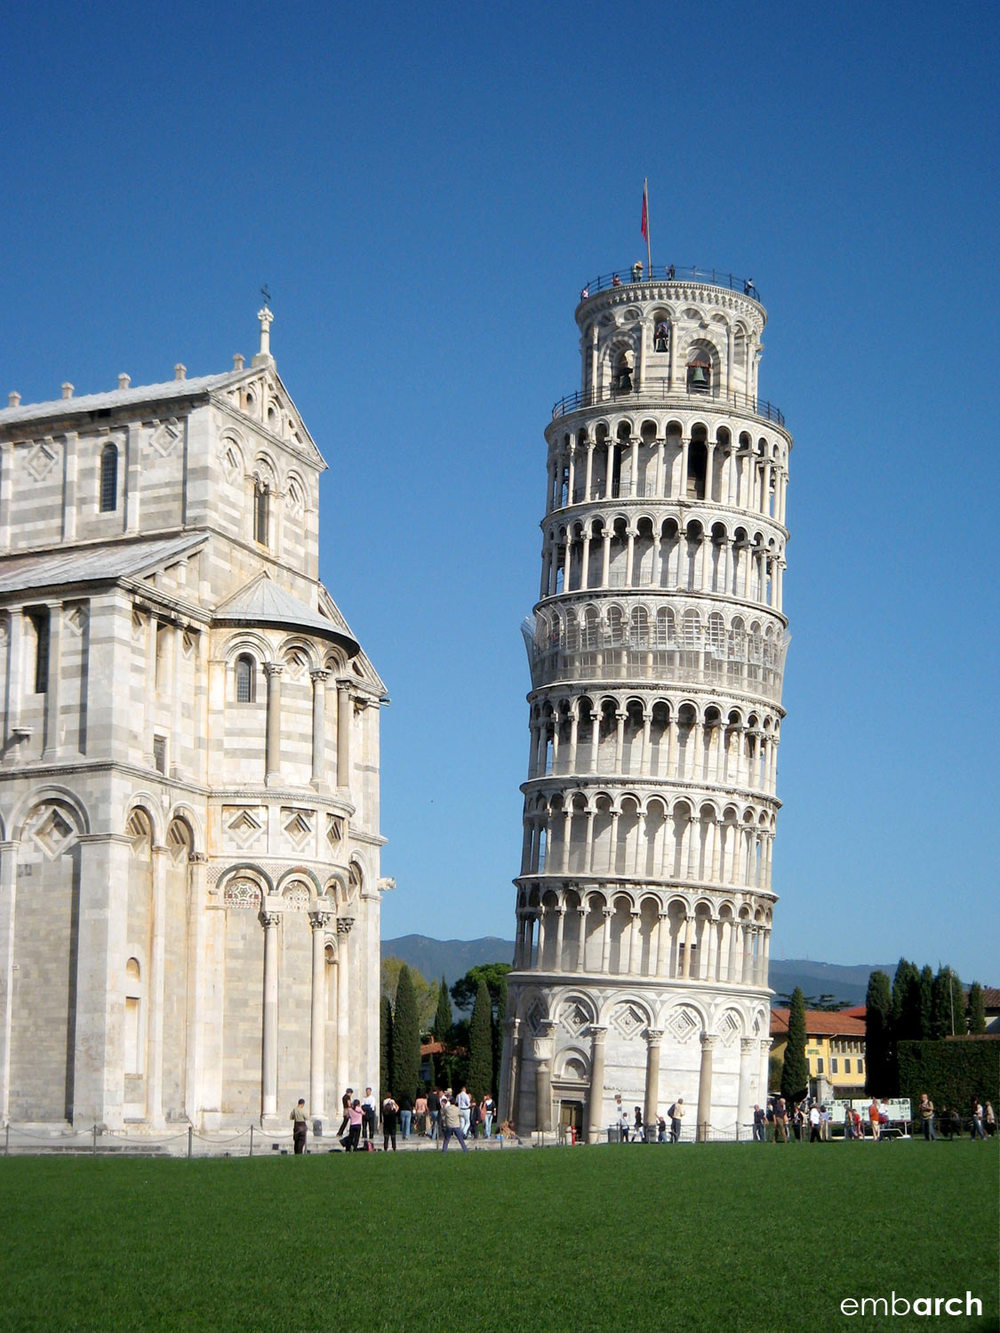 Piazza del Duomo, Pisa Italy - view of cathedral and bell tower (the Leaning Tower of Pisa)